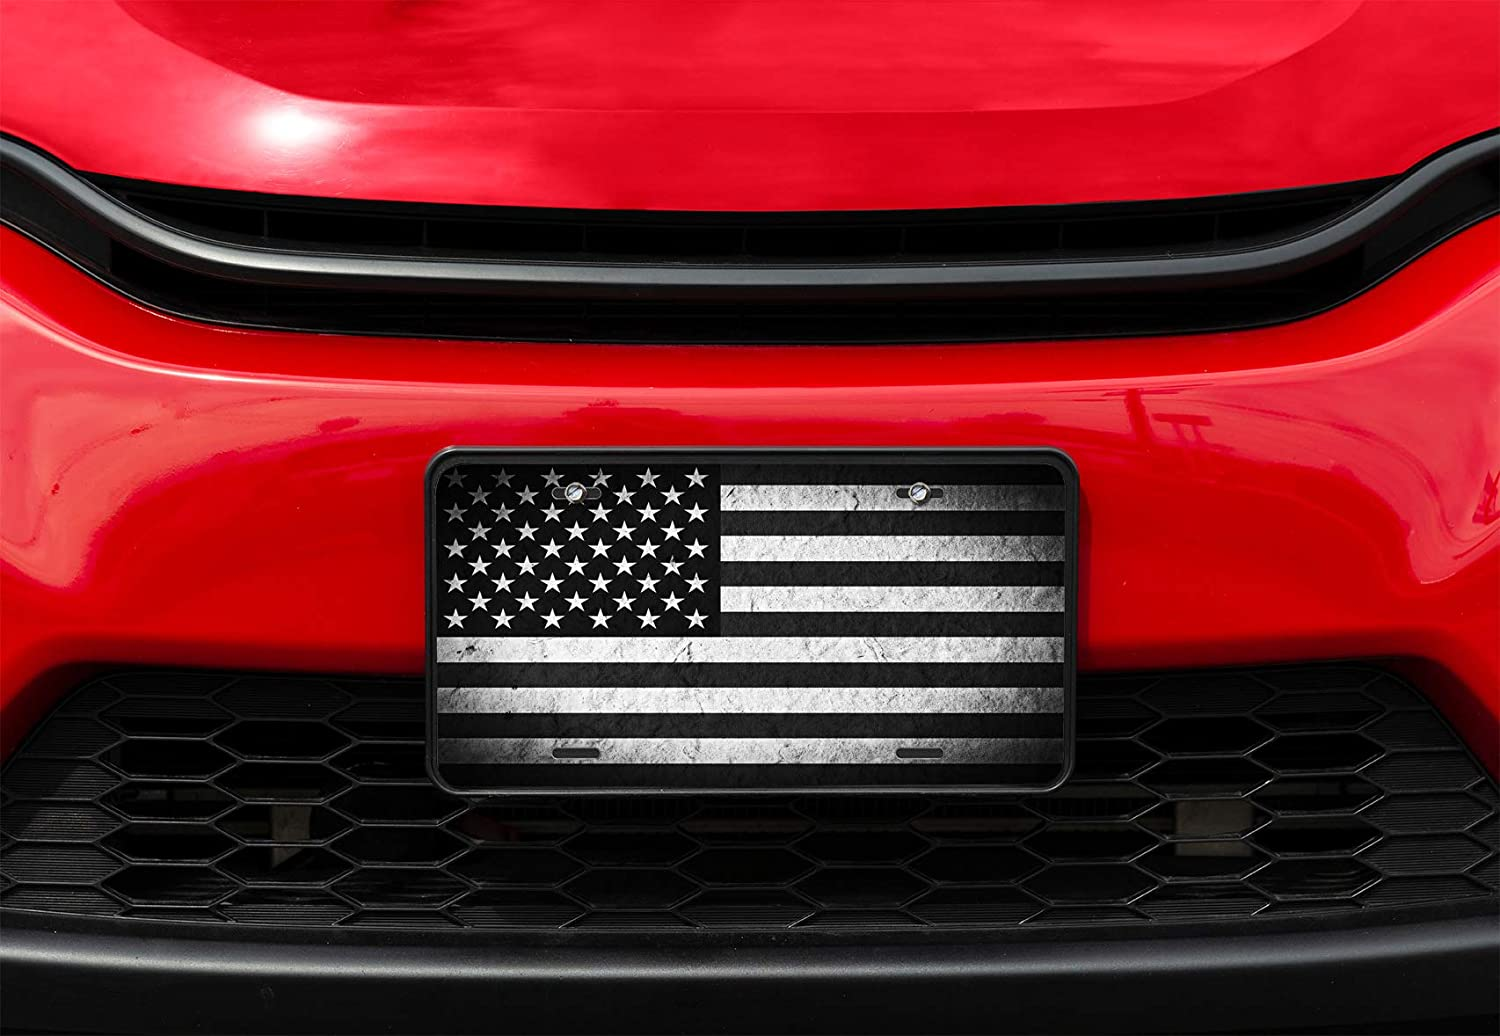 4 Holes Amcove License Plate Vintage Grunge American Flag Decorative Car Front License Plate,Vanity Tag,Metal Car Plate,Aluminum Novelty License Plate,6 X 12 Inch